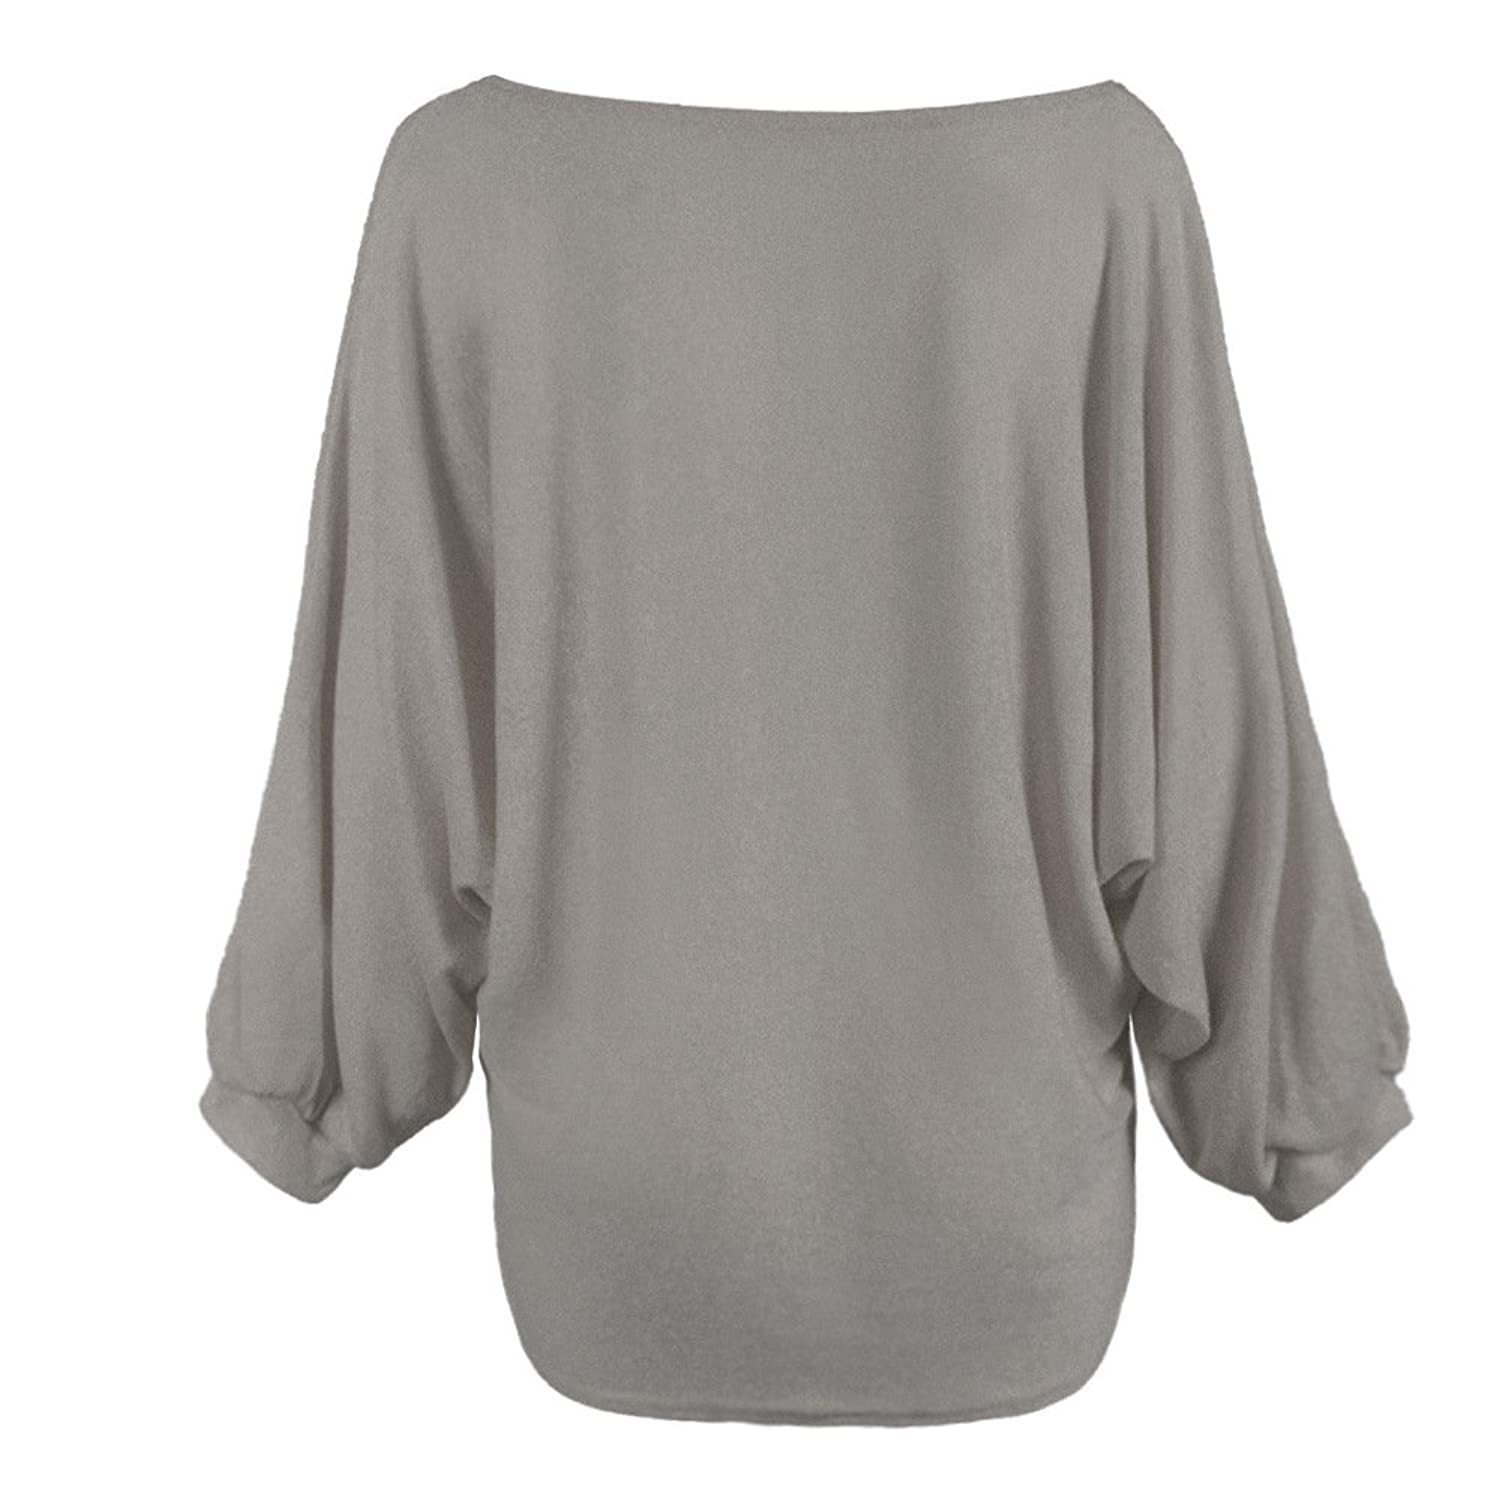 Smile YKK Womens Batwing Sleeve Sweater Knitting Pullover Loose Blouse Top